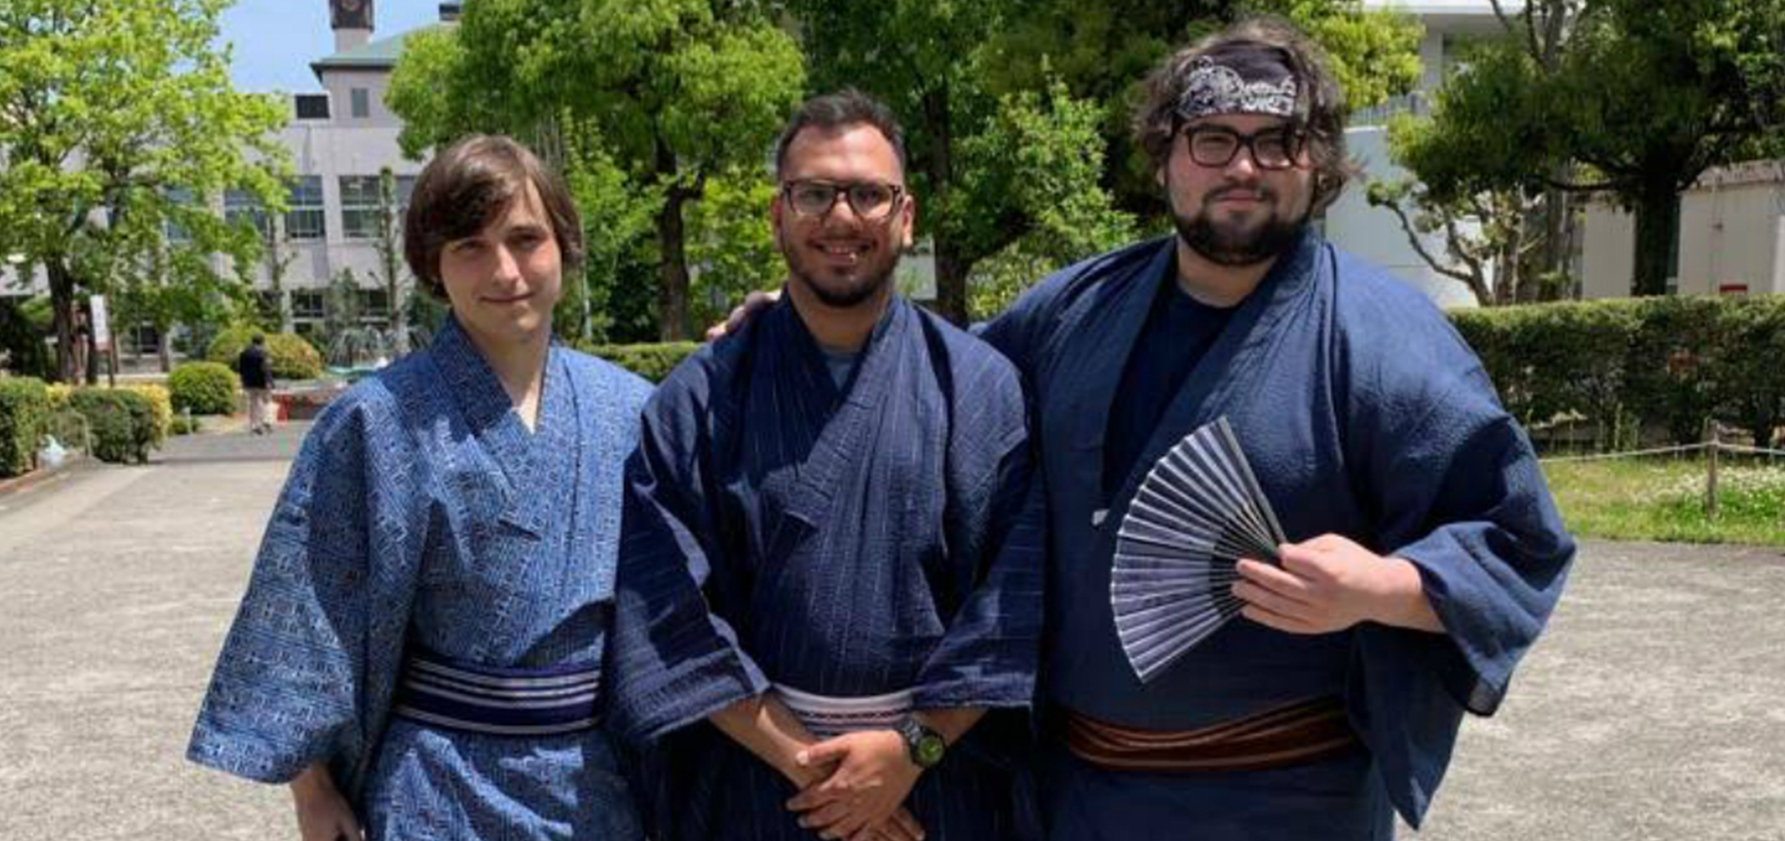 David A. Donio with friends in traditional Japanese dress